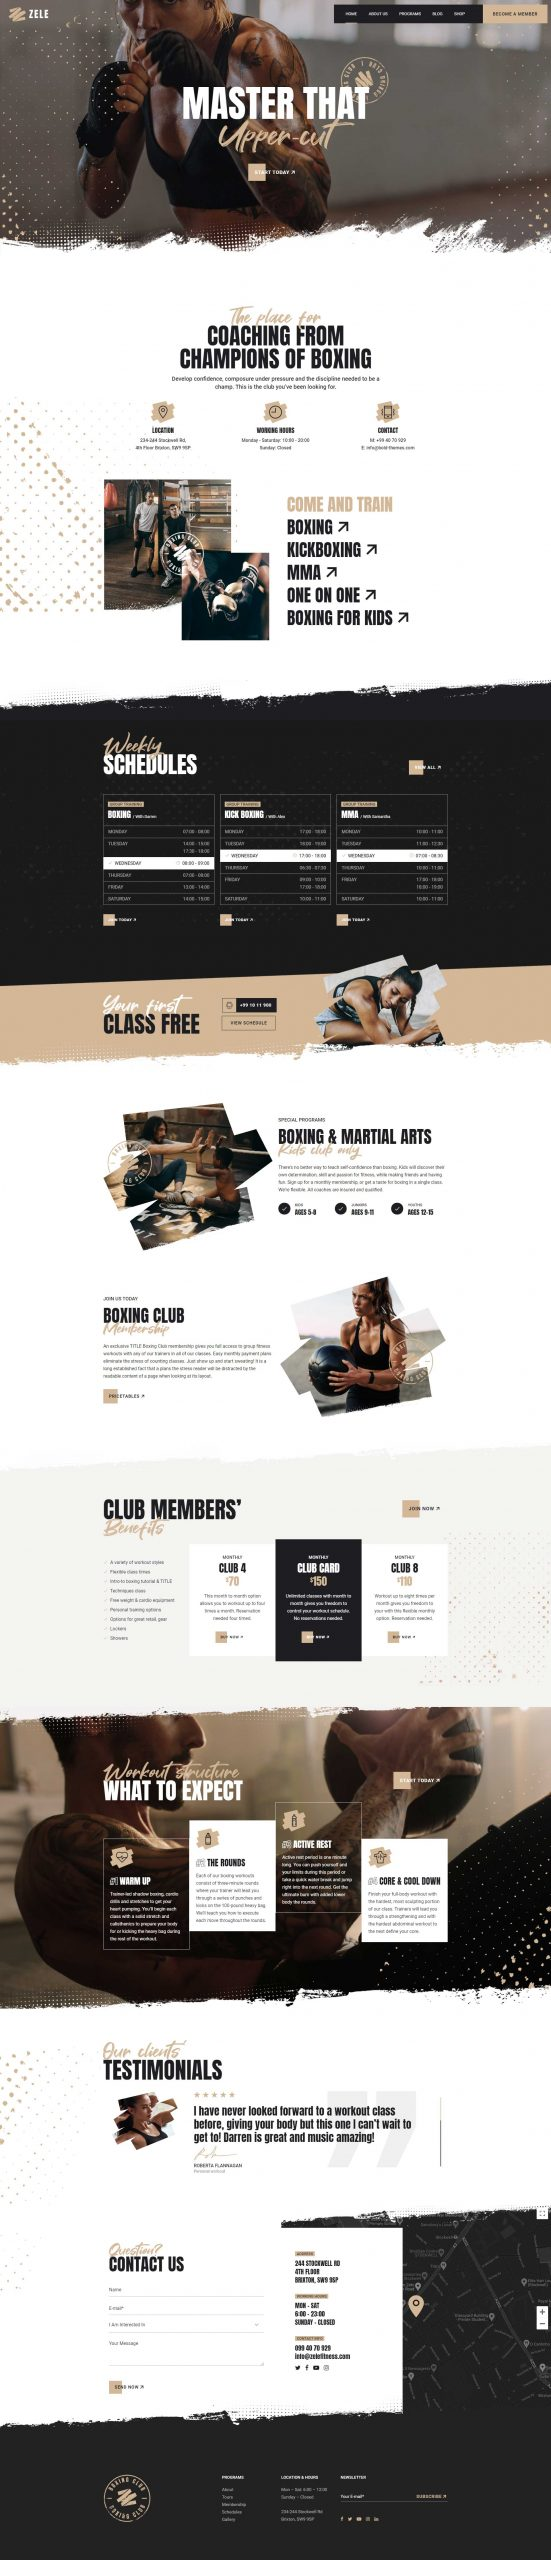 http://zele.bold-themes.com/wp-content/uploads/2021/07/Rough-Home-02-scaled-1.jpg